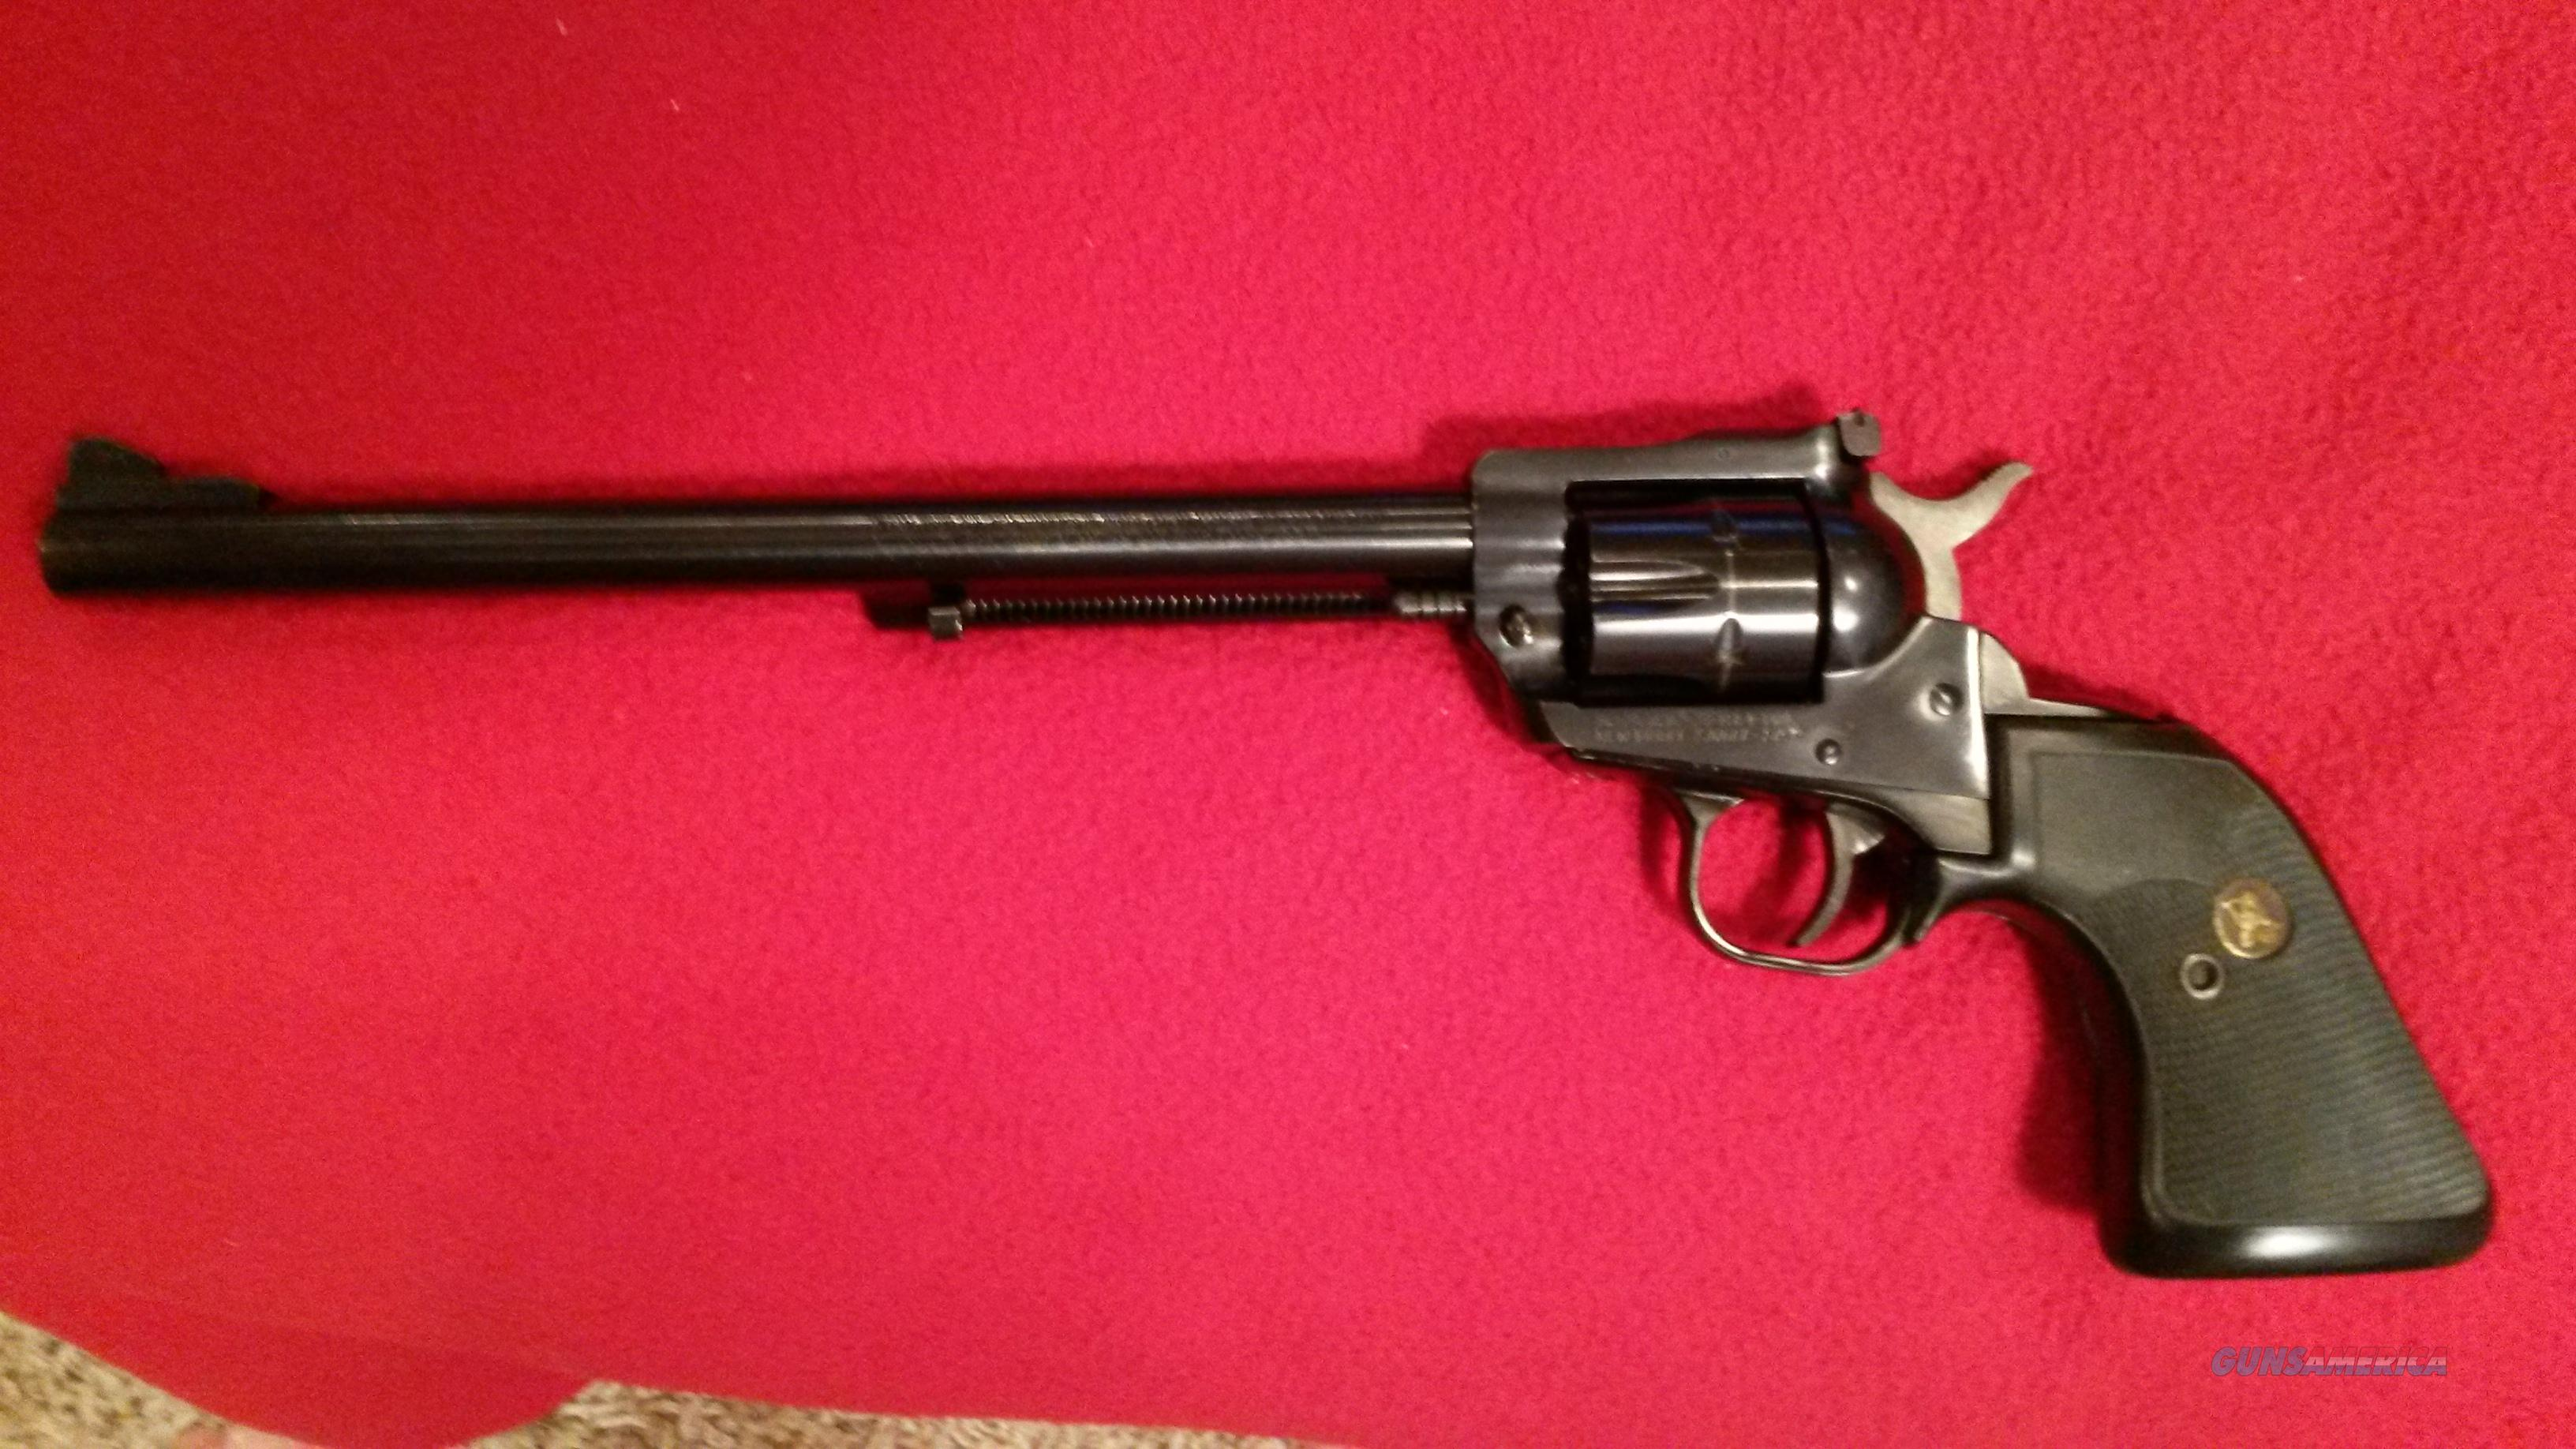 Ruger Single Six .32 magnum  9 .5 inch barrel  Guns > Pistols > Ruger Single Action Revolvers > Single Six Type